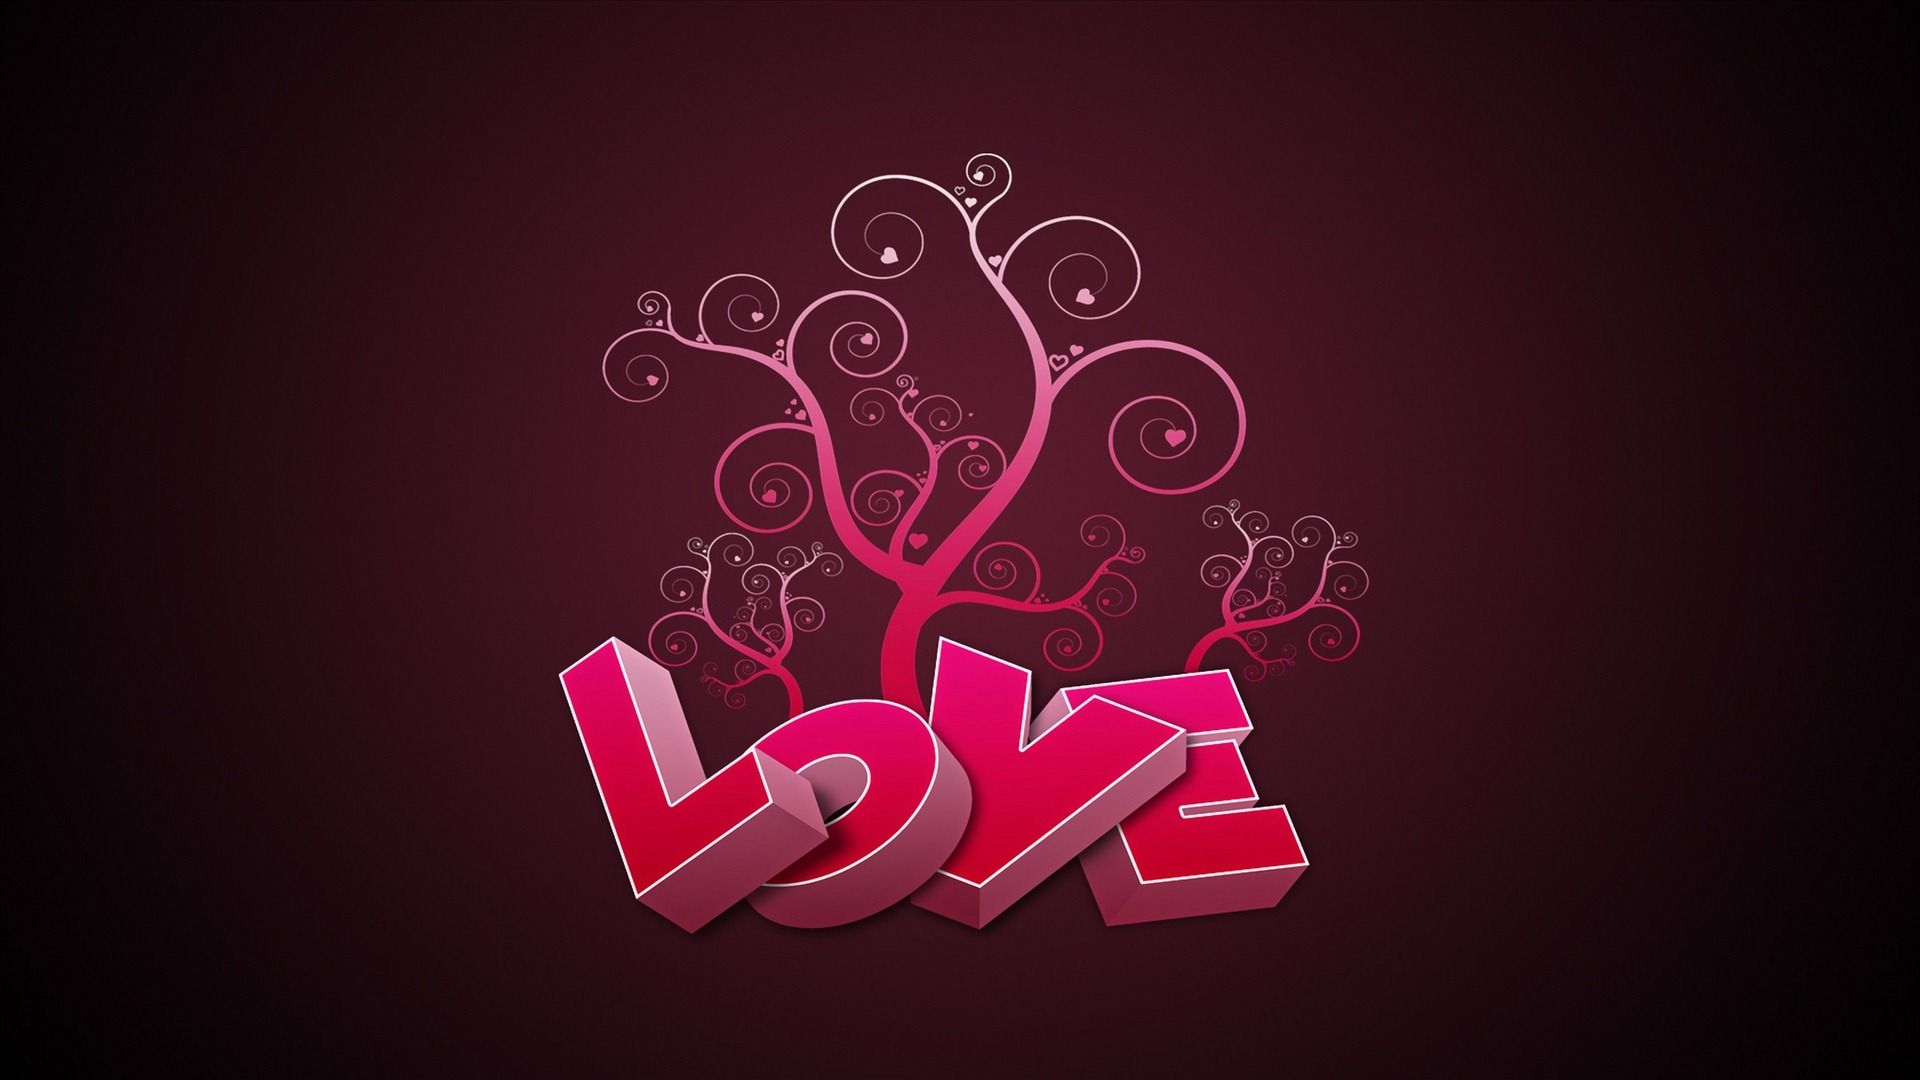 full hd p love wallpapers hd desktop backgrounds x